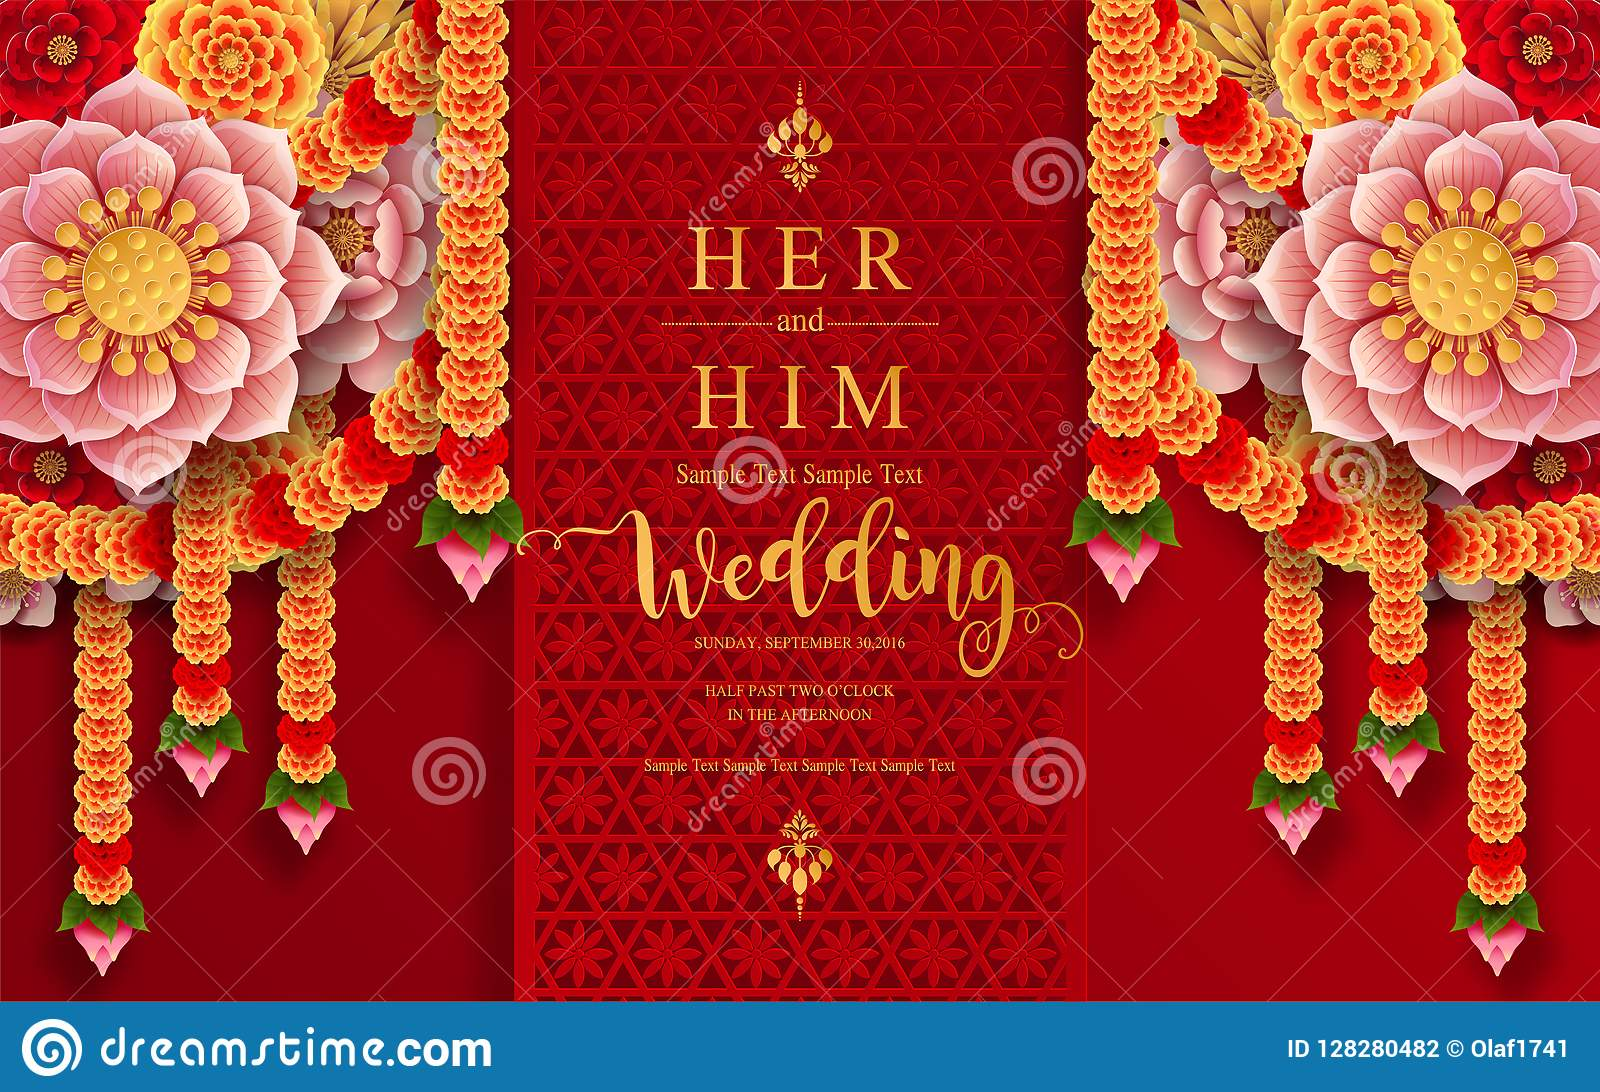 Indian Wedding Invitation Carddian Wedding Invitation Card